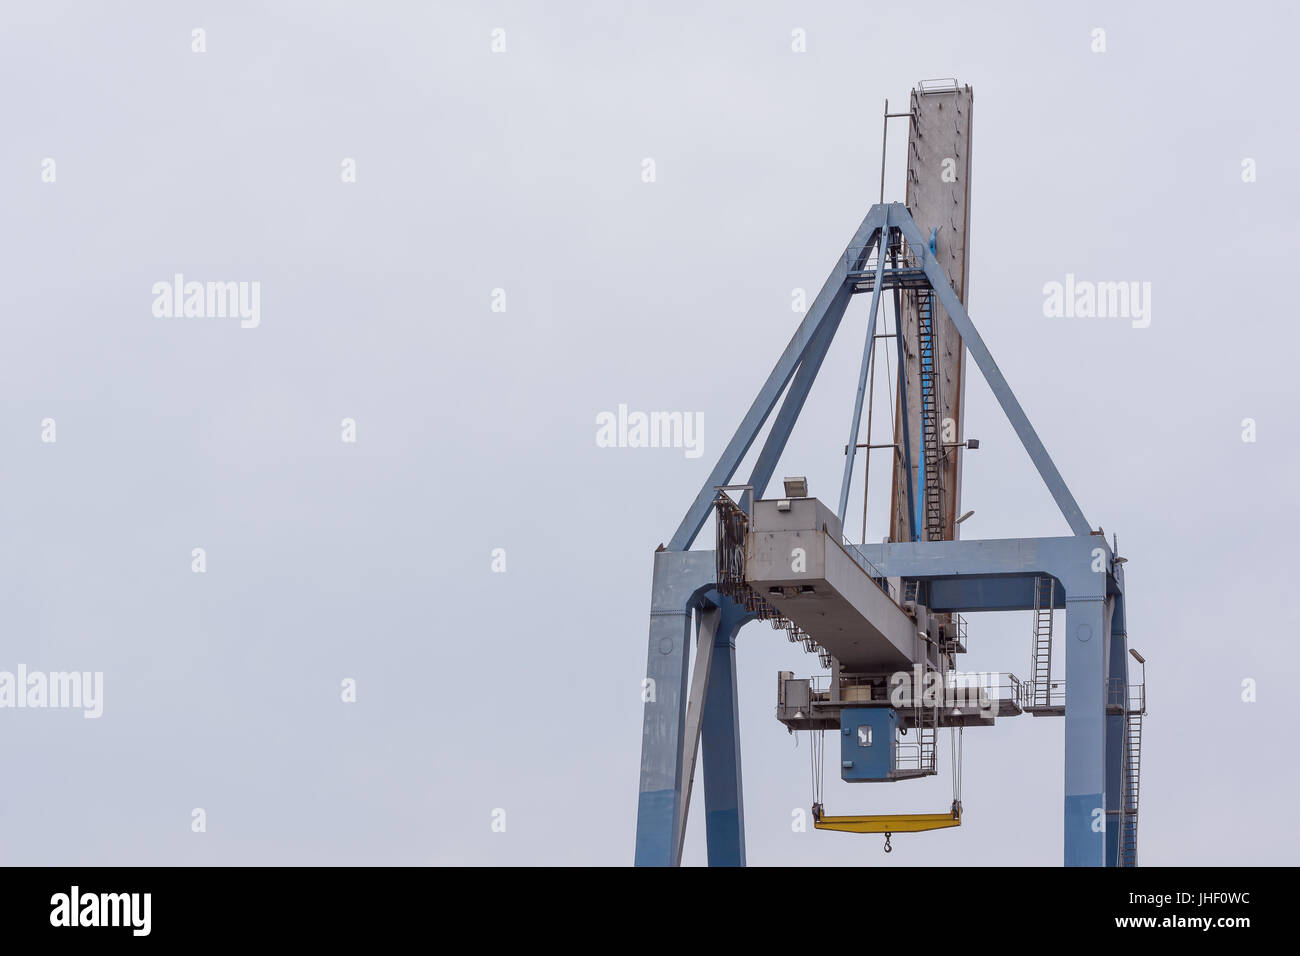 Container crane against blue sky at the port of Hundested, Denmark, July 10, 2017 - Stock Image